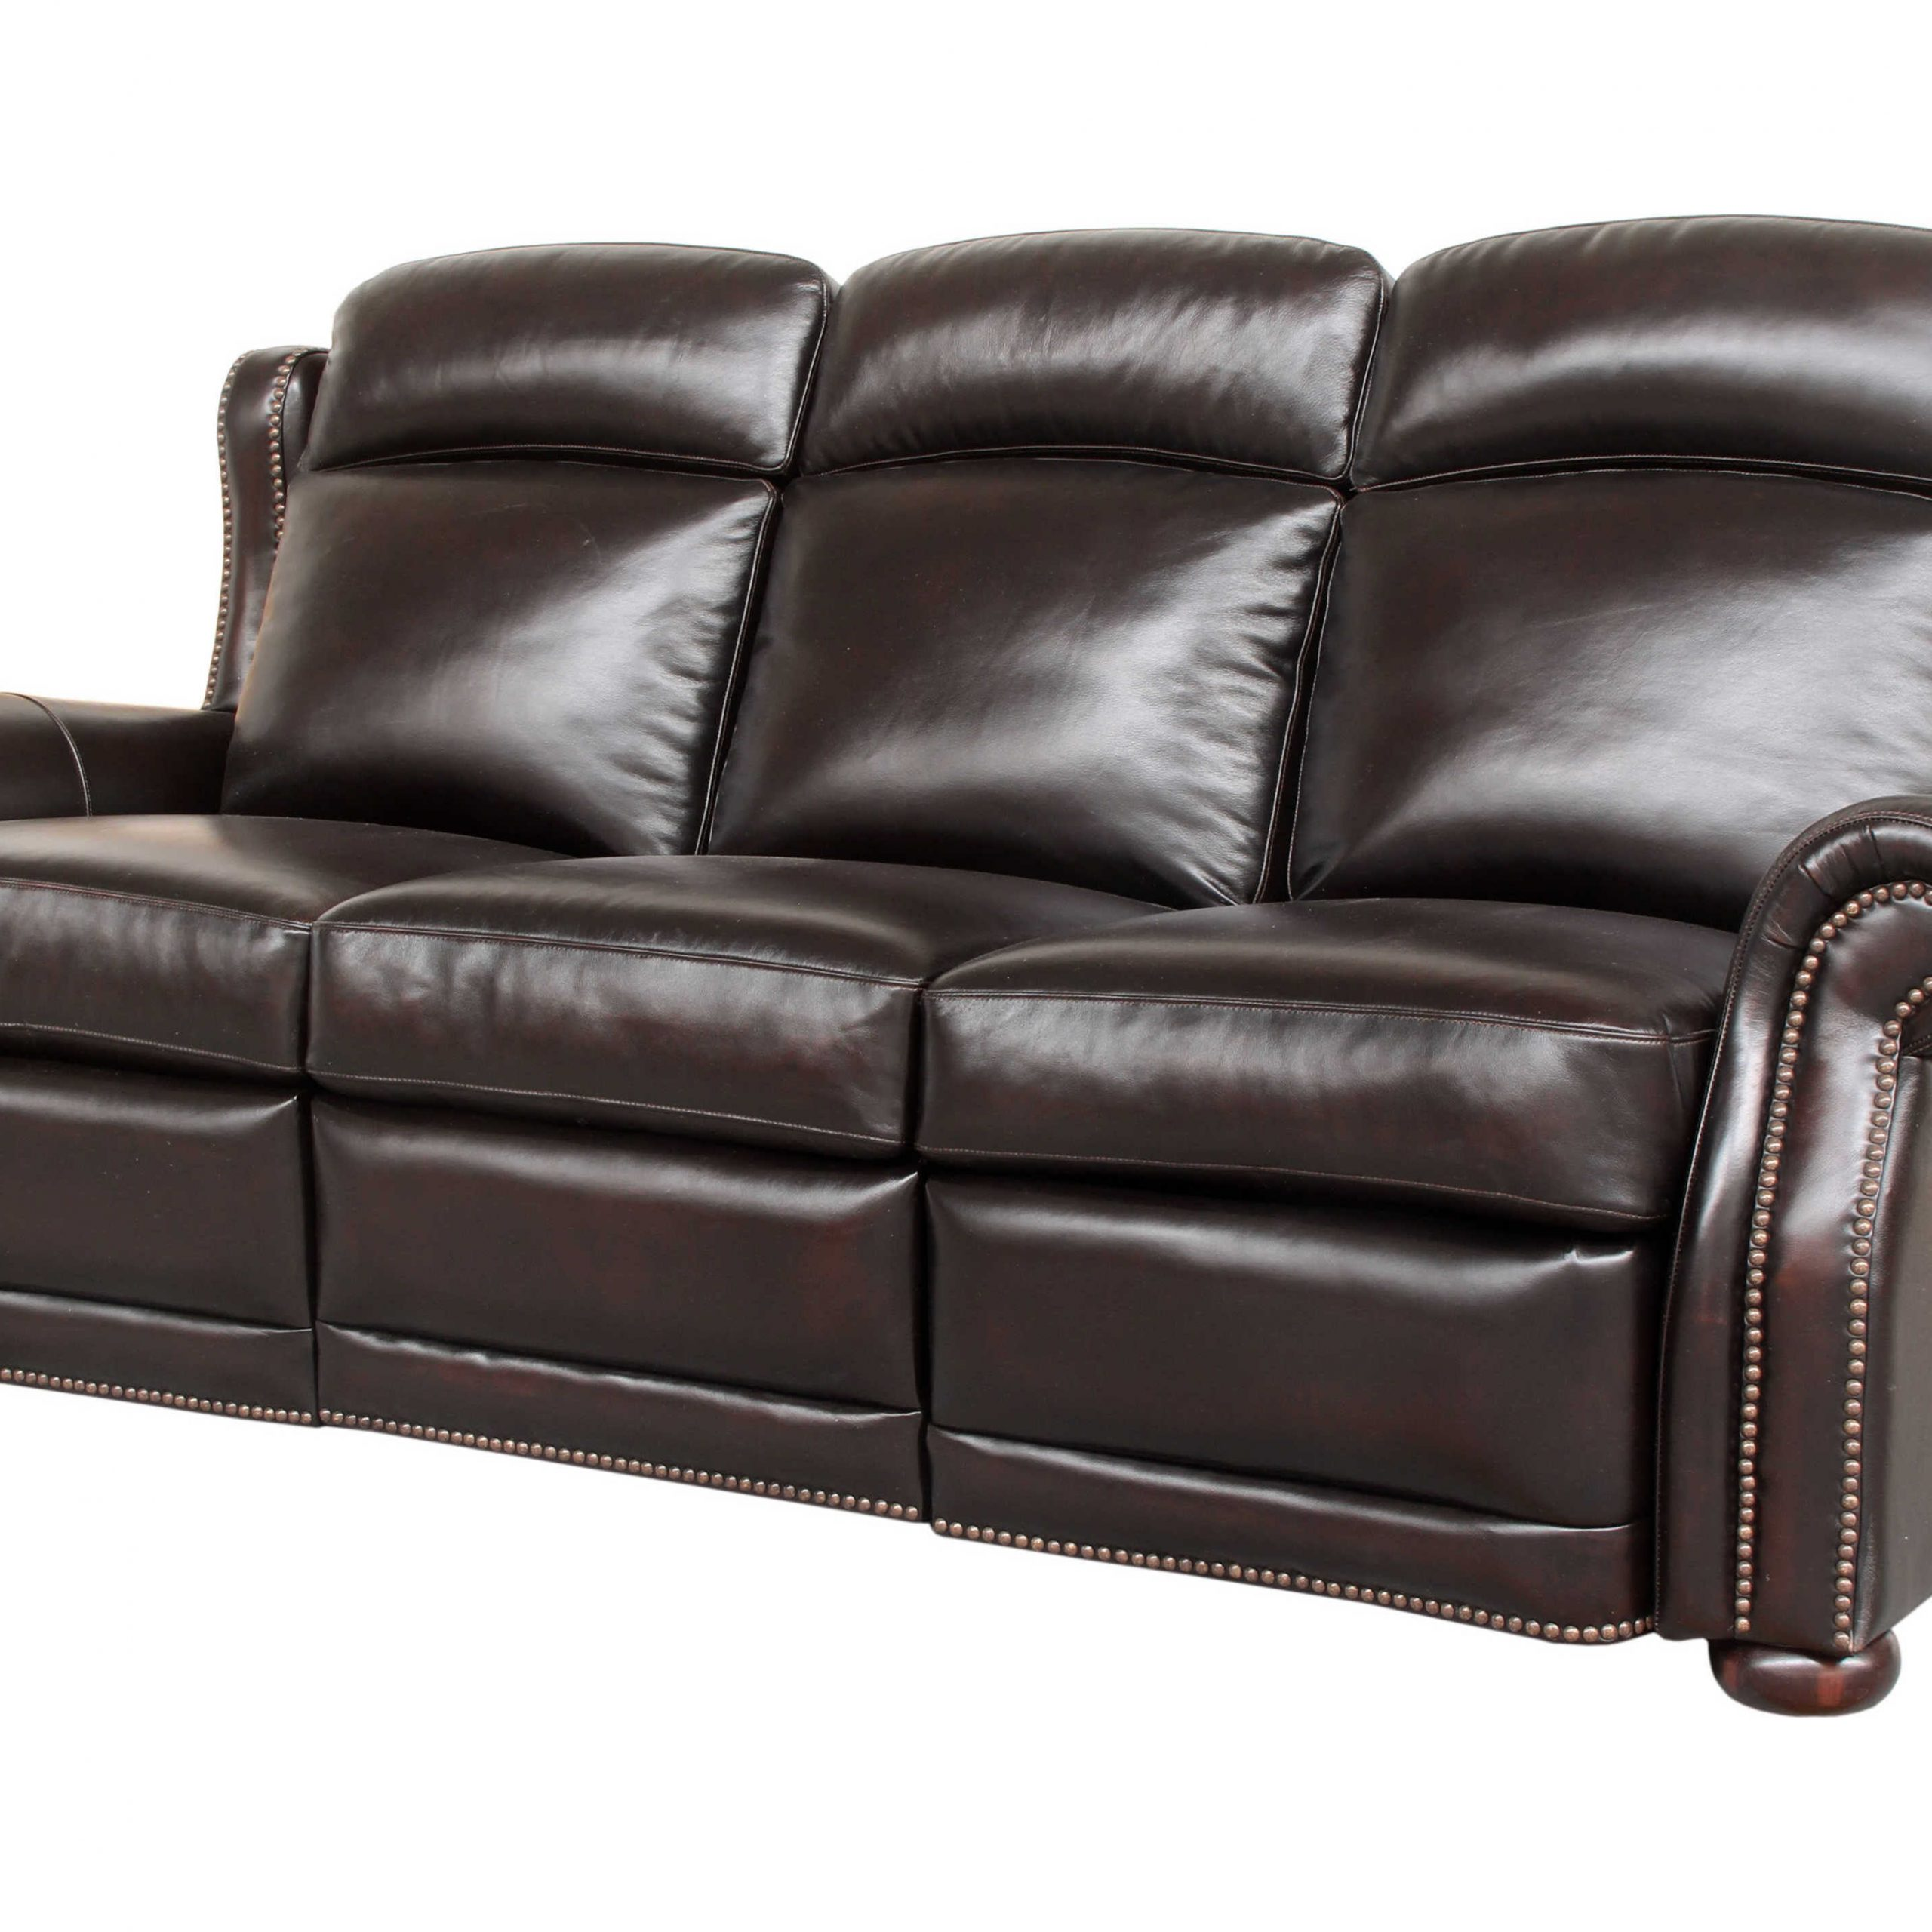 Charleston Power Reclining Sofas Within Most Popular Barcalounger Vintage Washington Stetson Coffee Power (View 11 of 15)